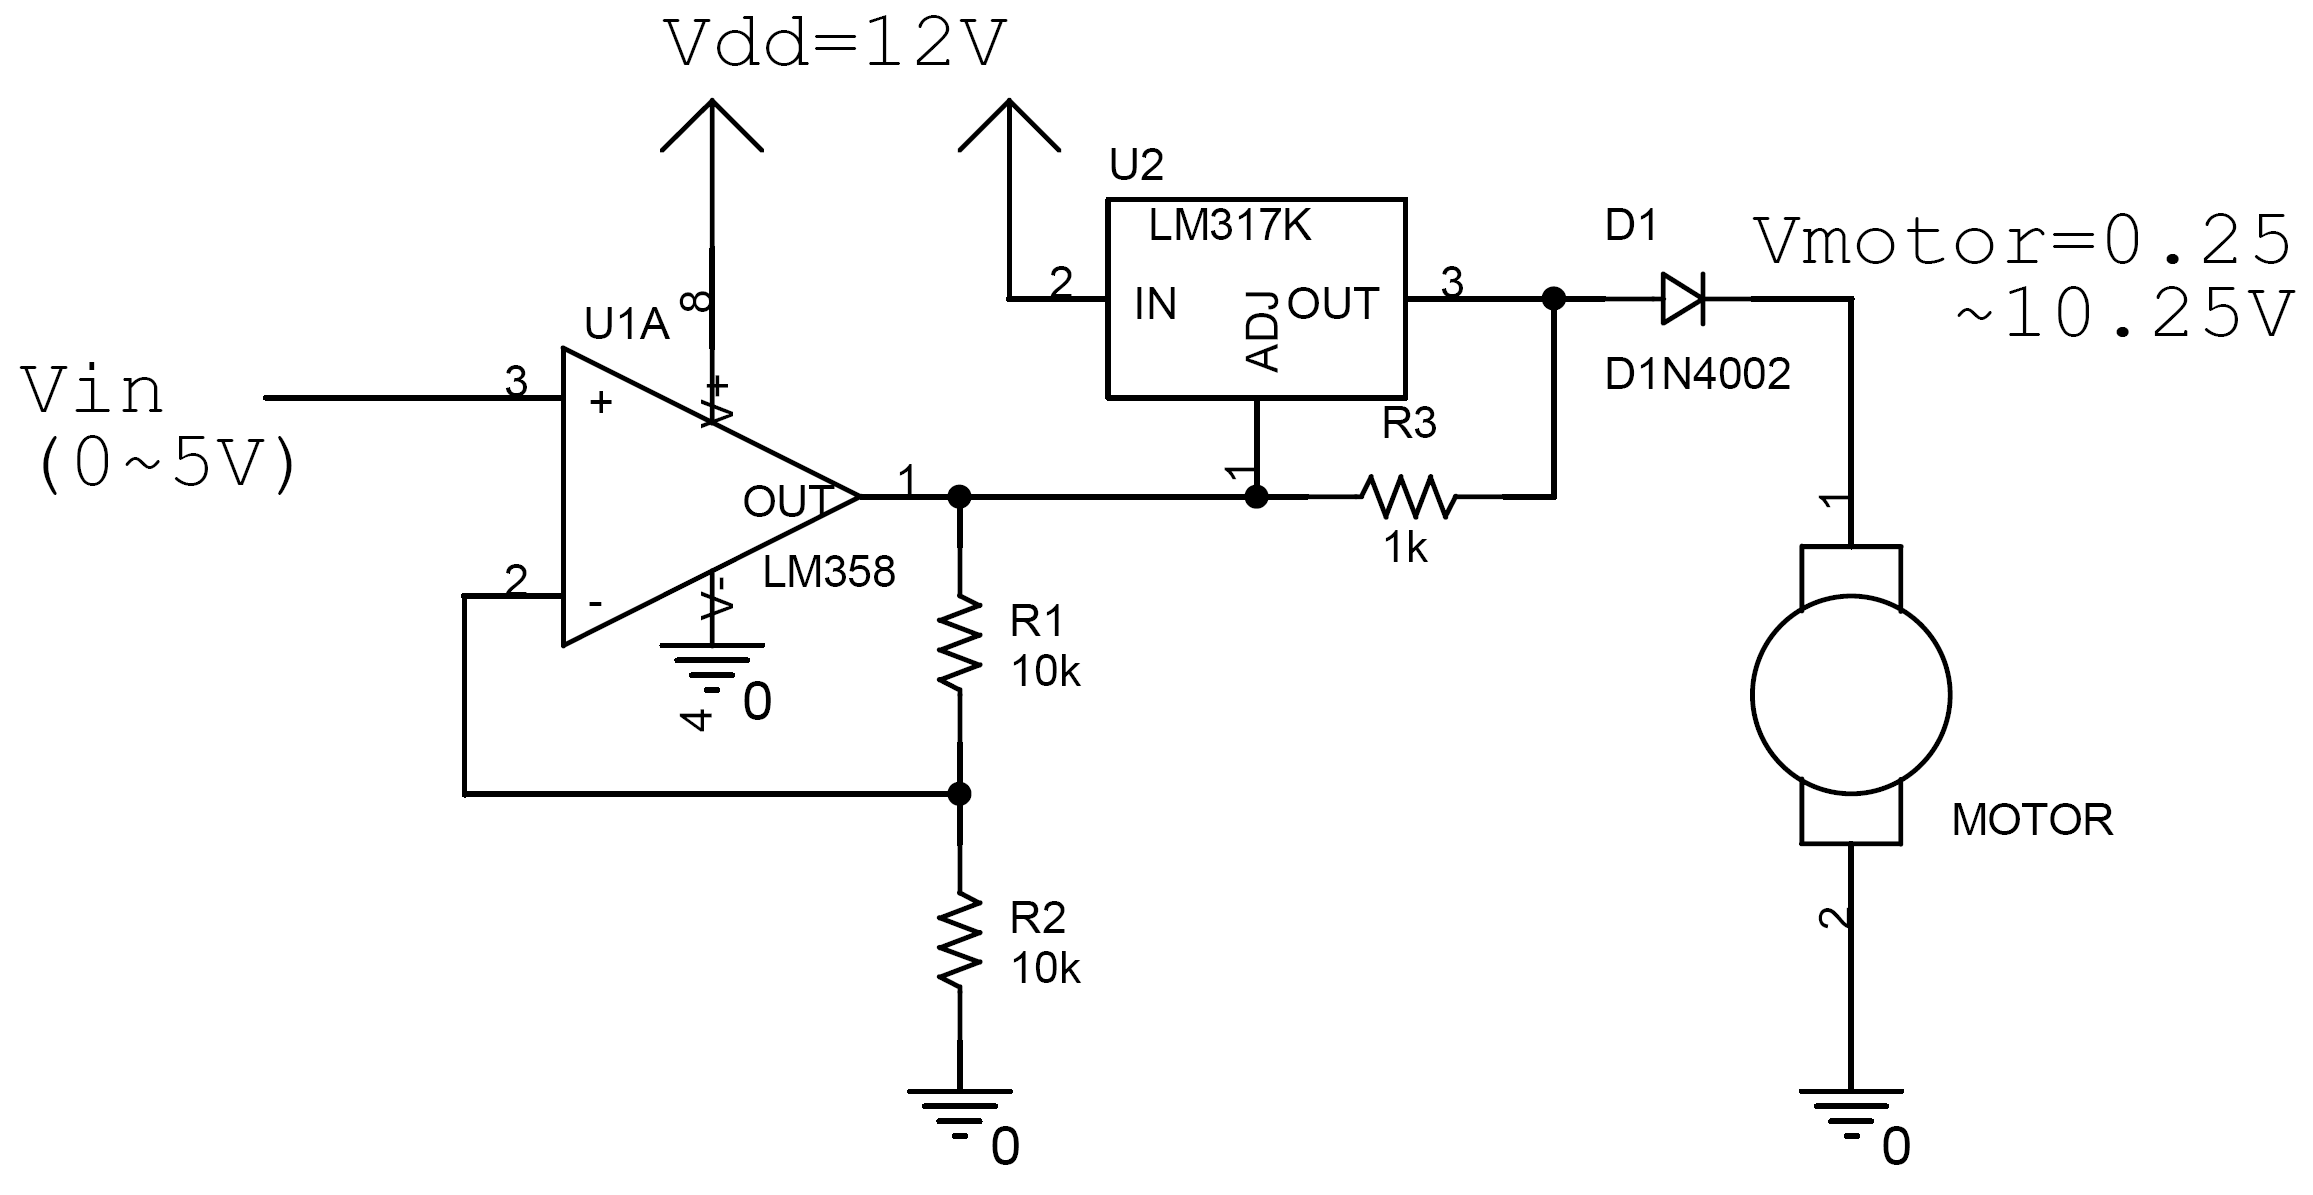 Simple Dc Motor Control Circuit Diagram Brushless Wiring Yi Yao Controller And Tachometer